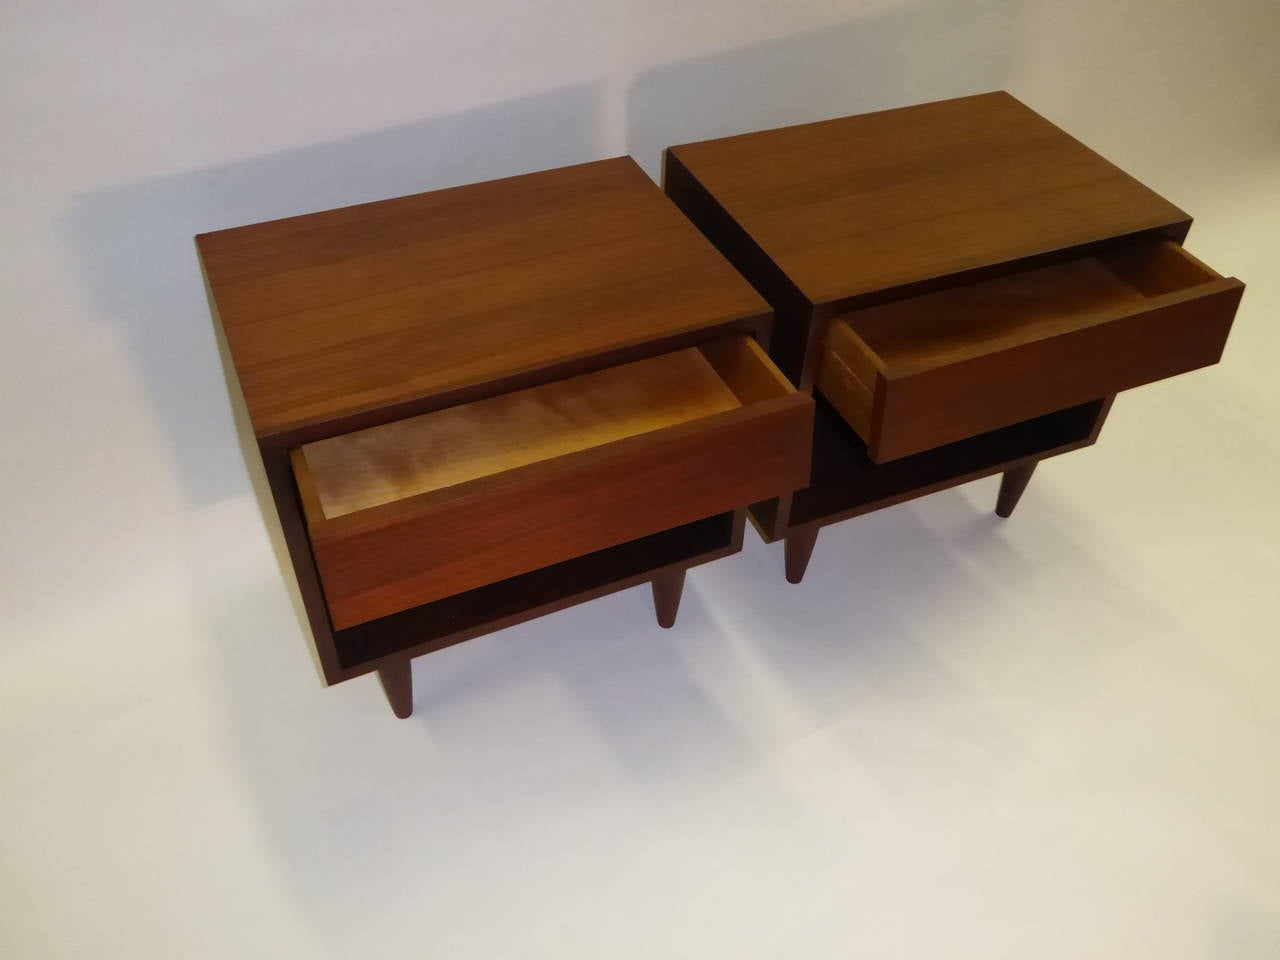 Danish Bedside Table 1950s Danish Teak Bedside Tables At 1stdibs